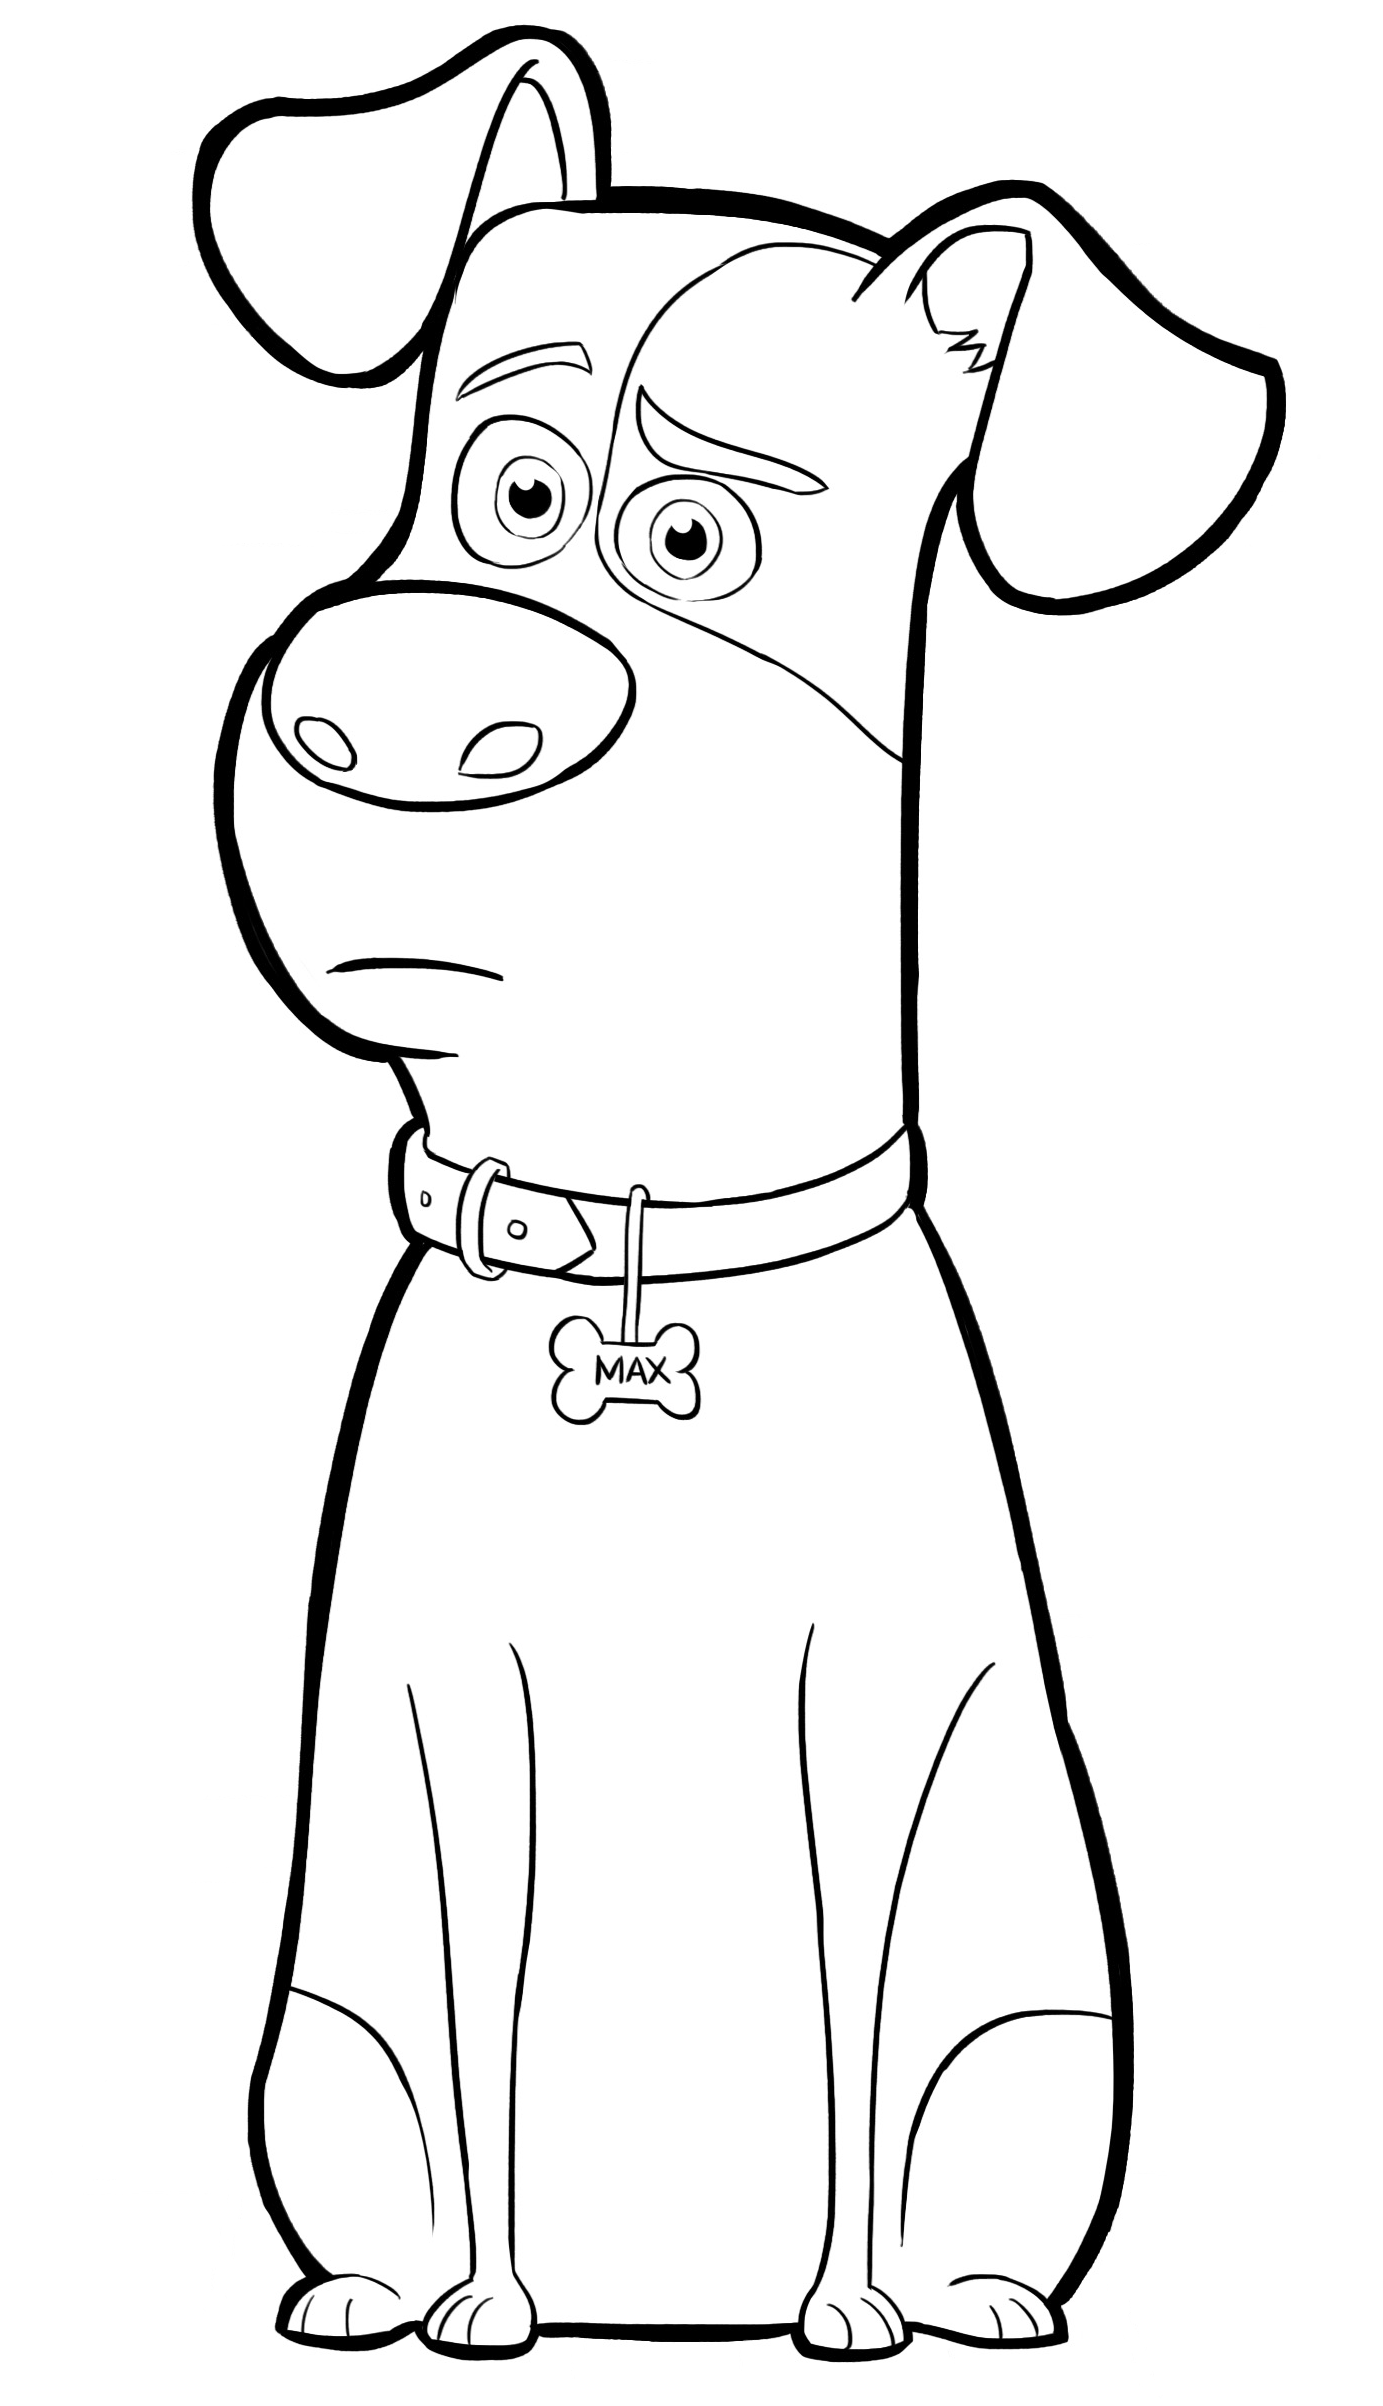 coloring sheet coloring pictures for kids free printable care bear coloring pages for kids for coloring pictures kids sheet coloring